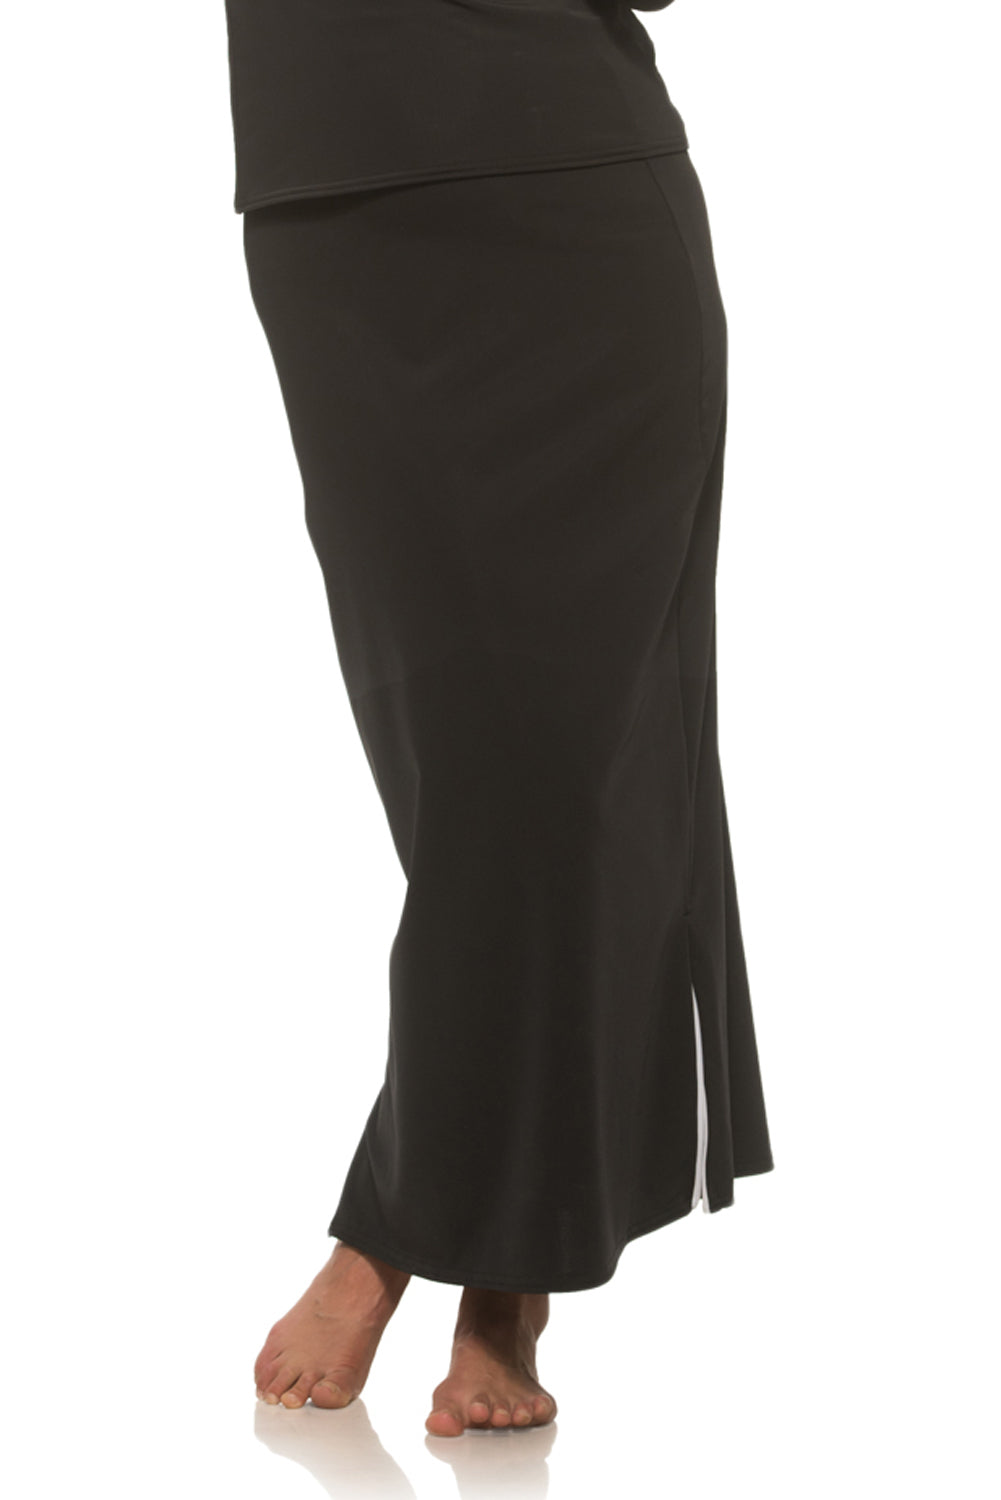 Long Black Skirt with Zipper